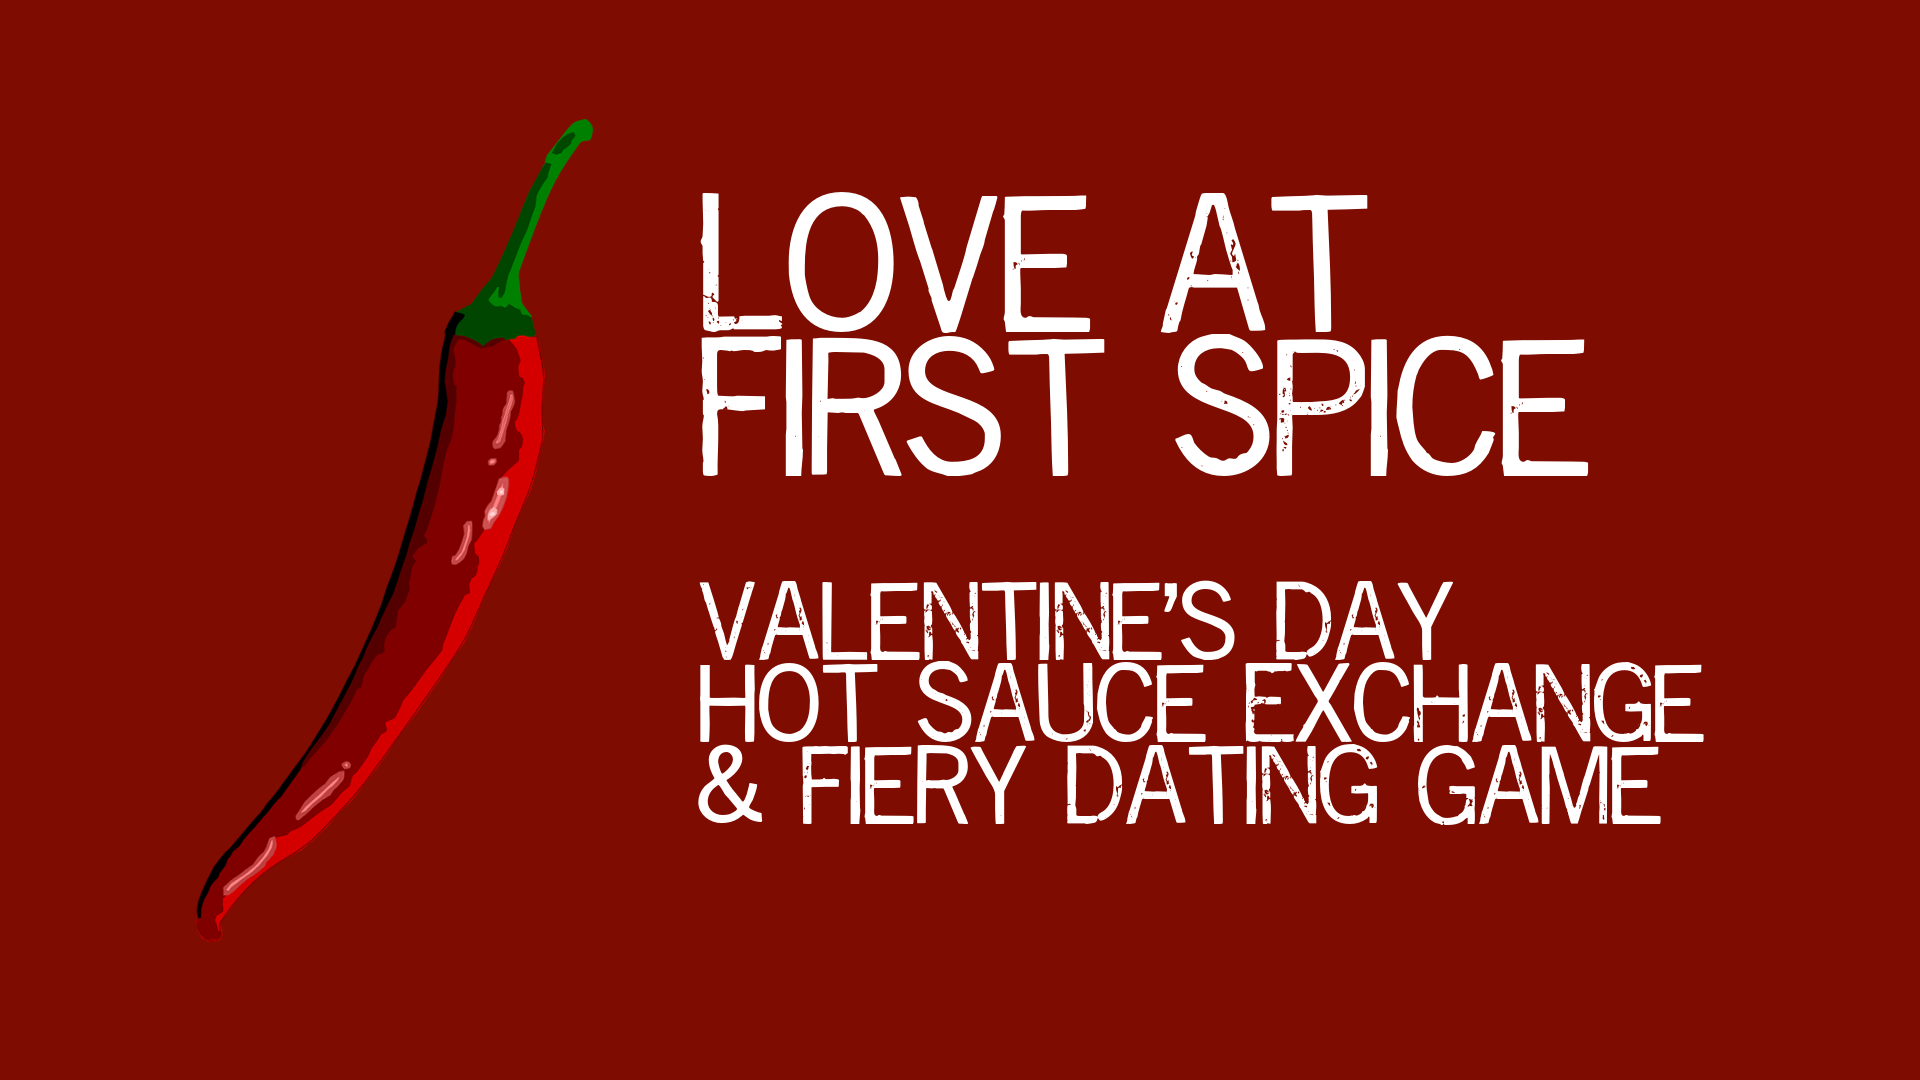 Loveatfirstspice.png#asset:9969